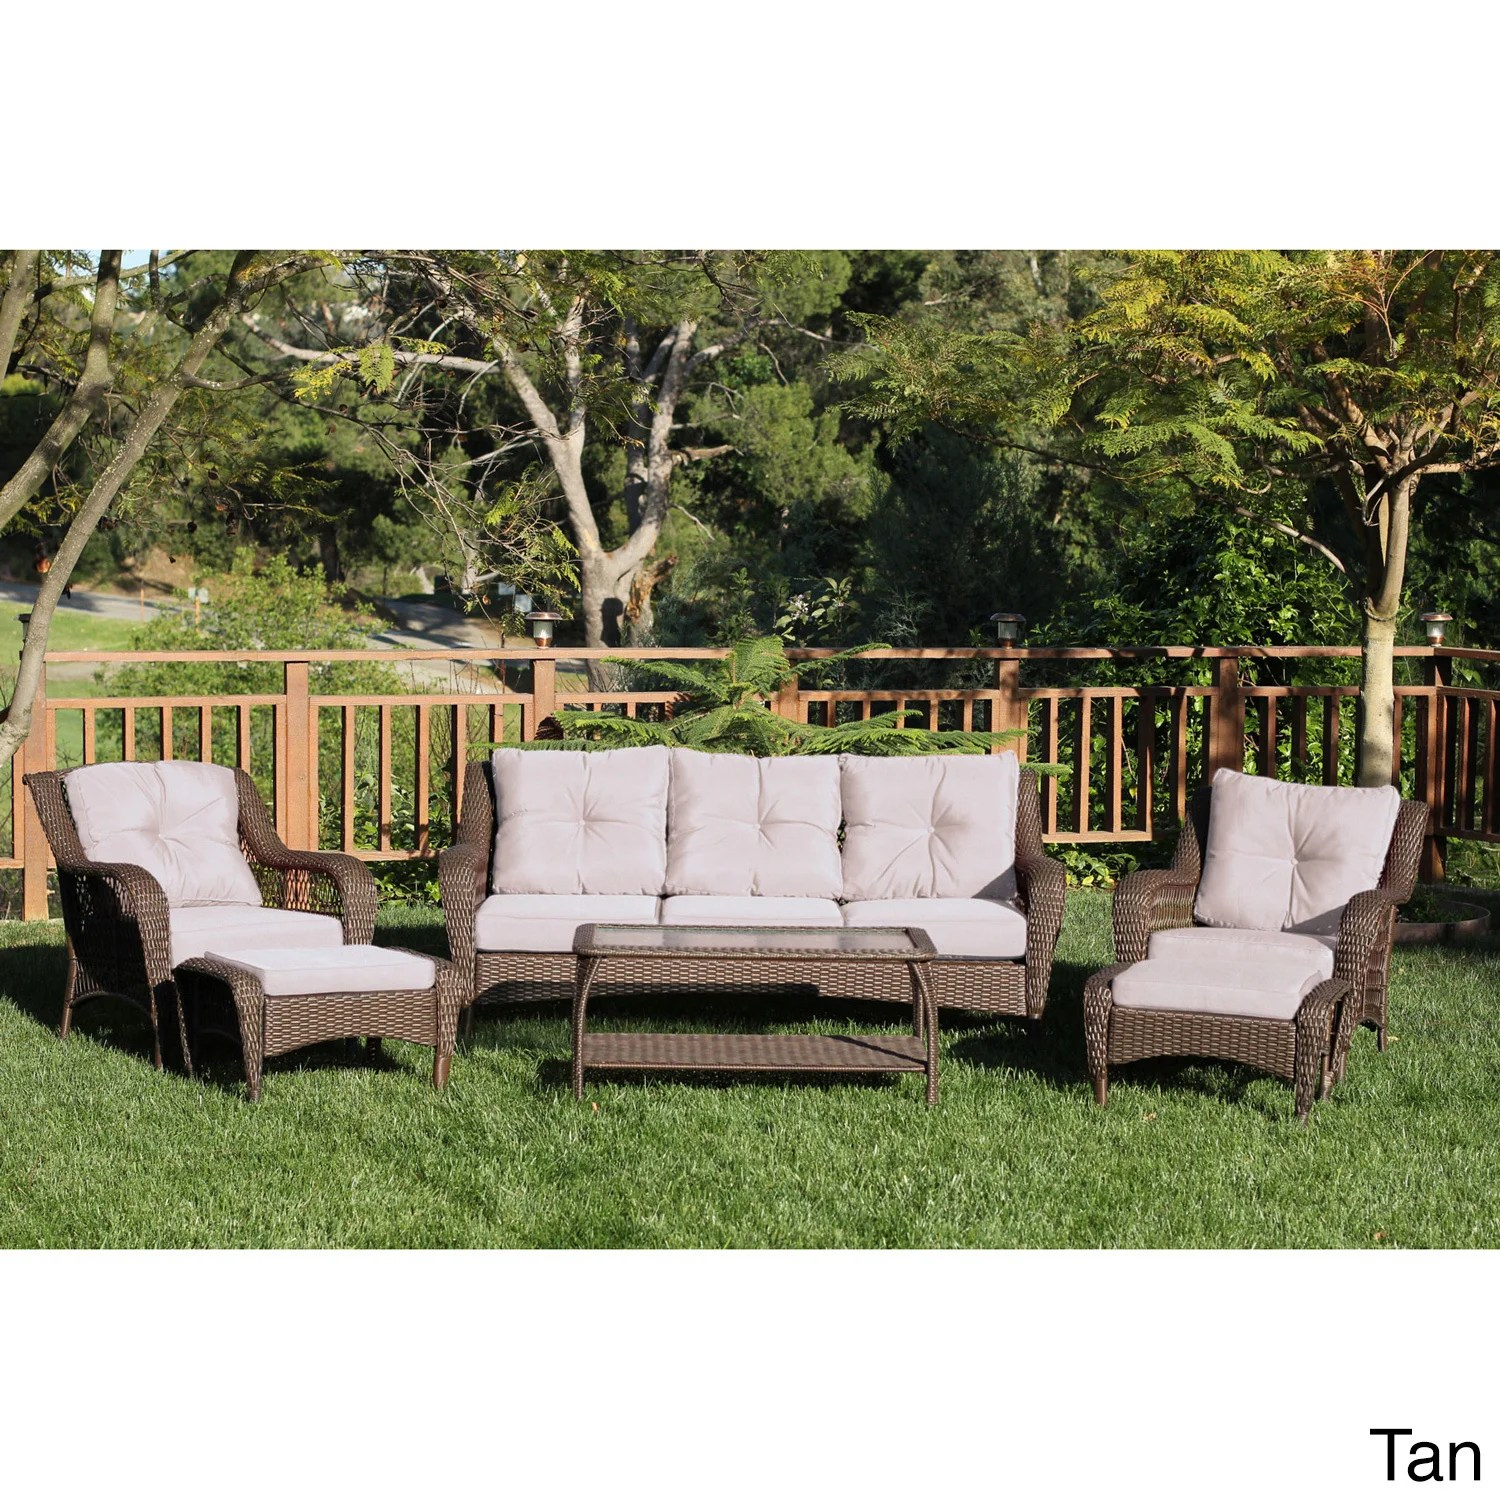 Baptist 6 Piece Rattan Sofa Set With Cushions Jeco Resin Wicker Steel 6 Piece Patio Conversation Set